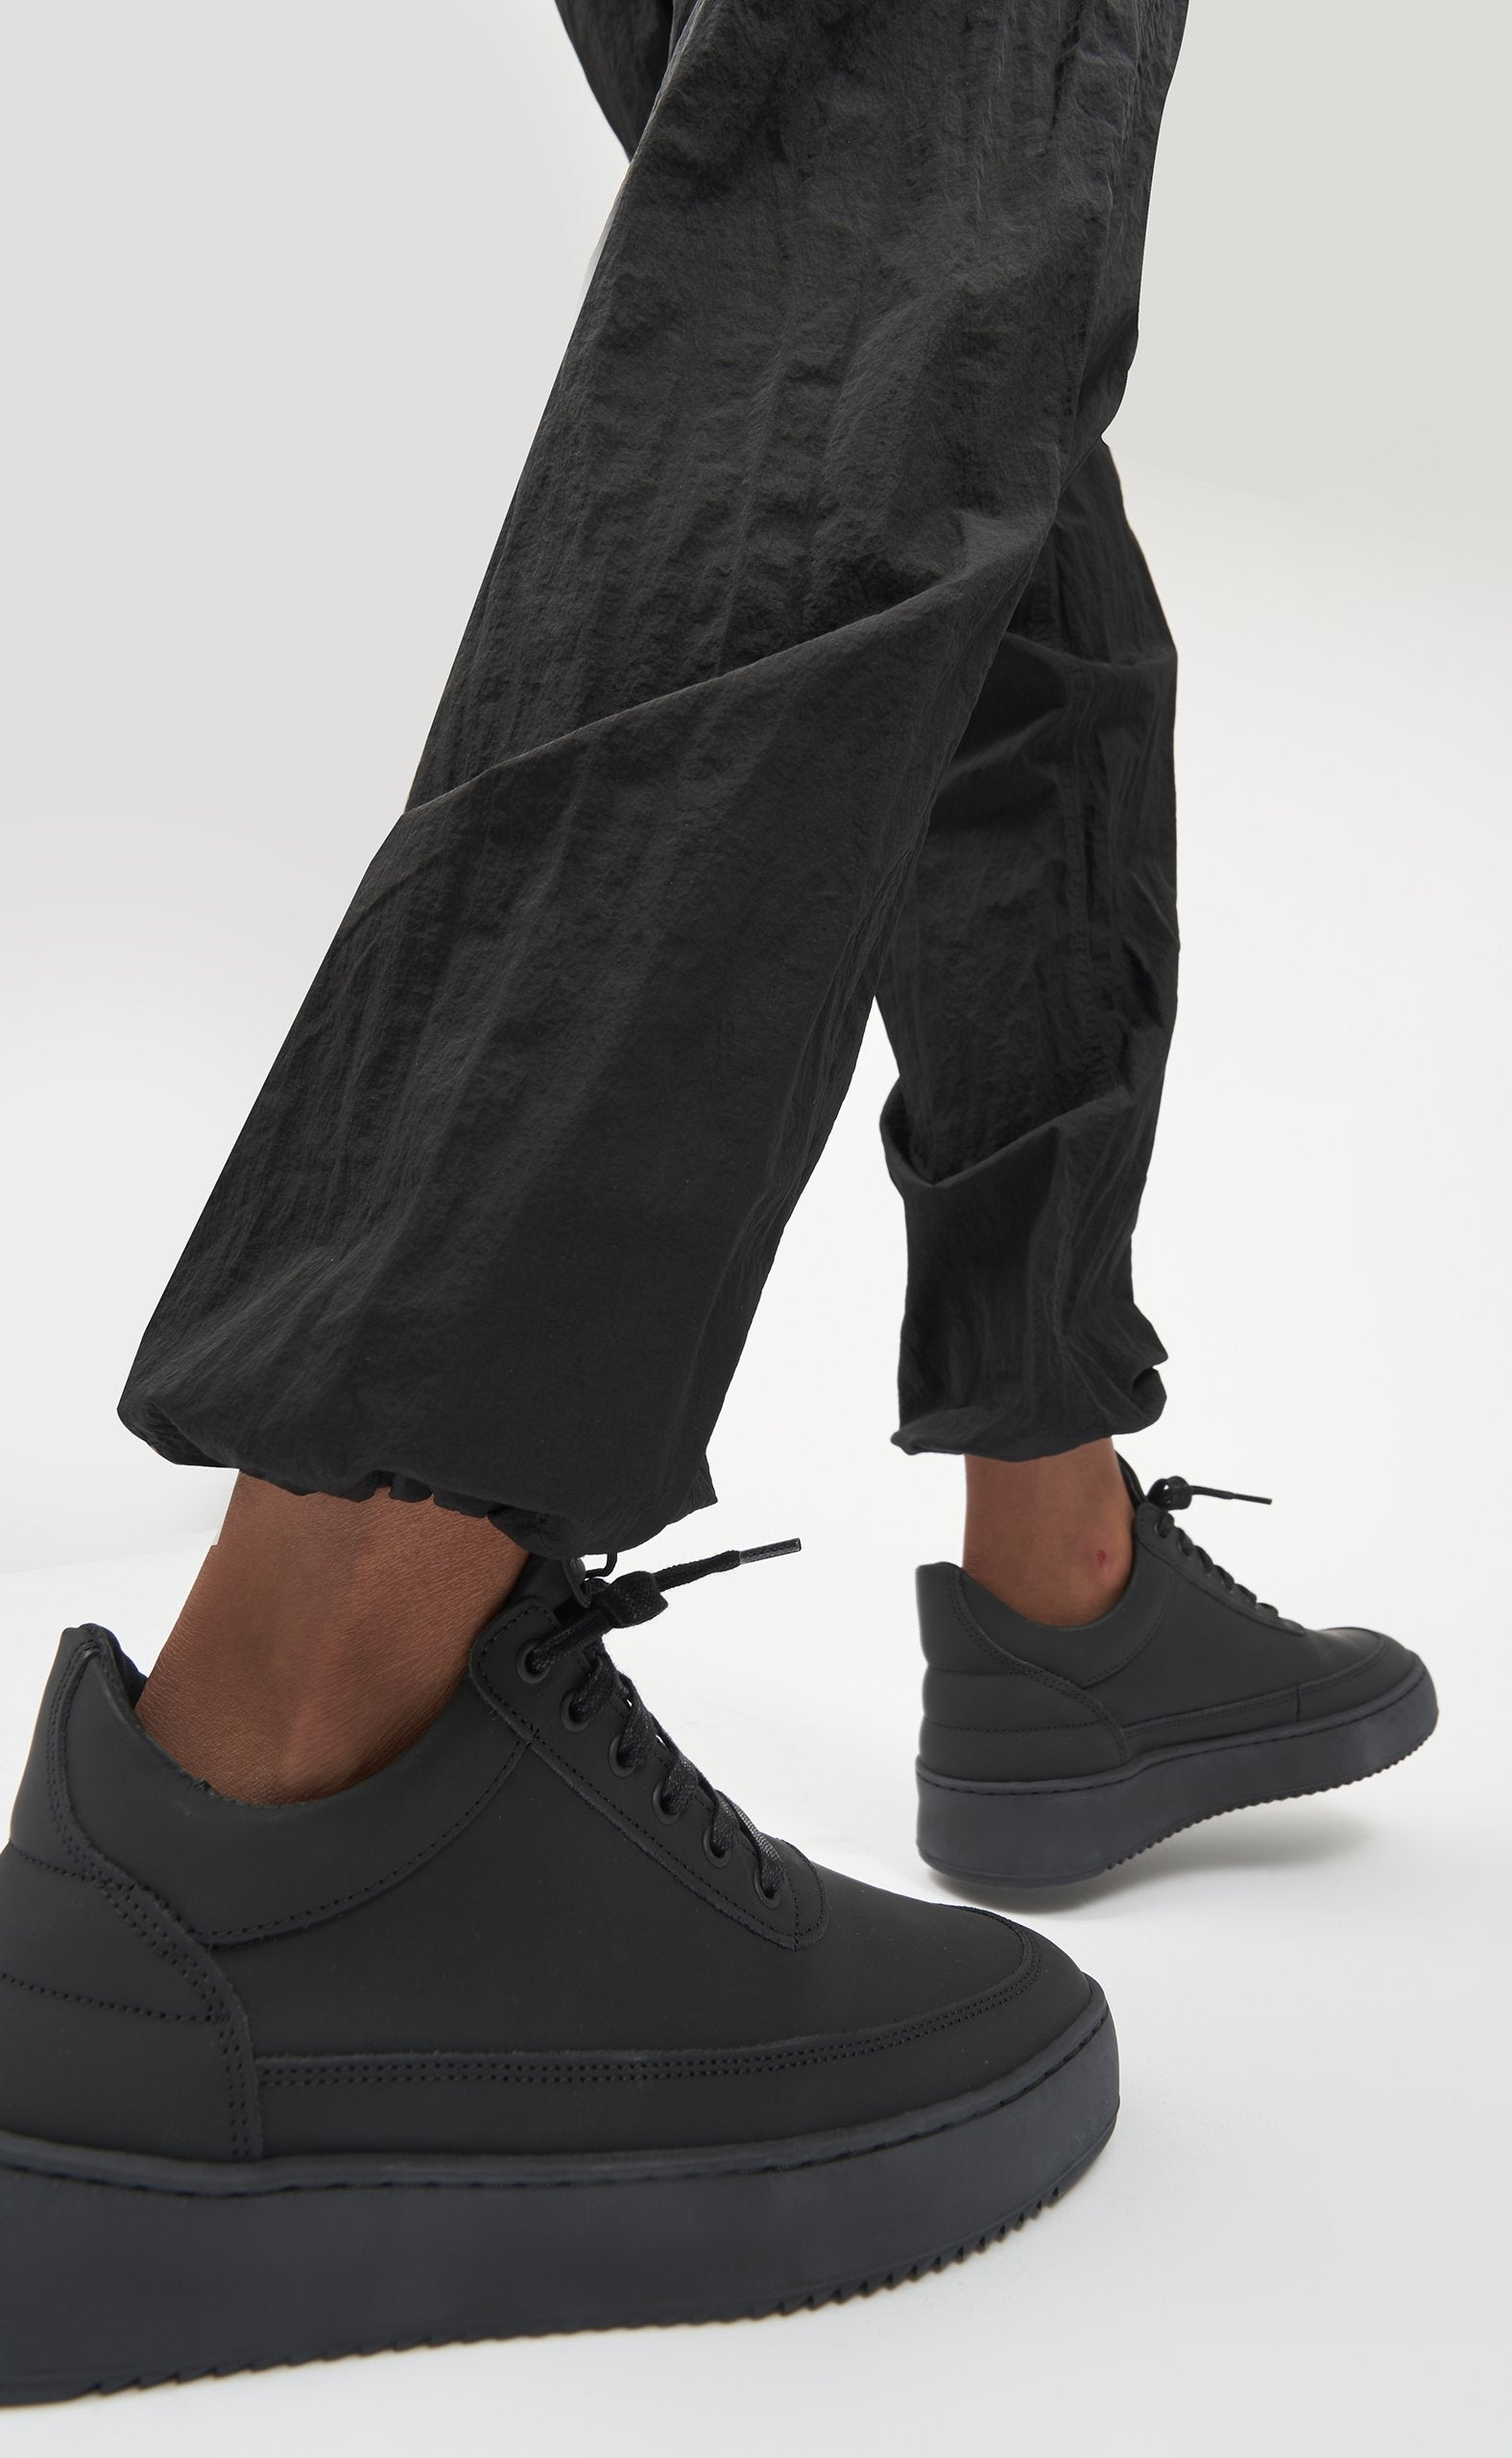 Low Top Ripple Coal All Black - women